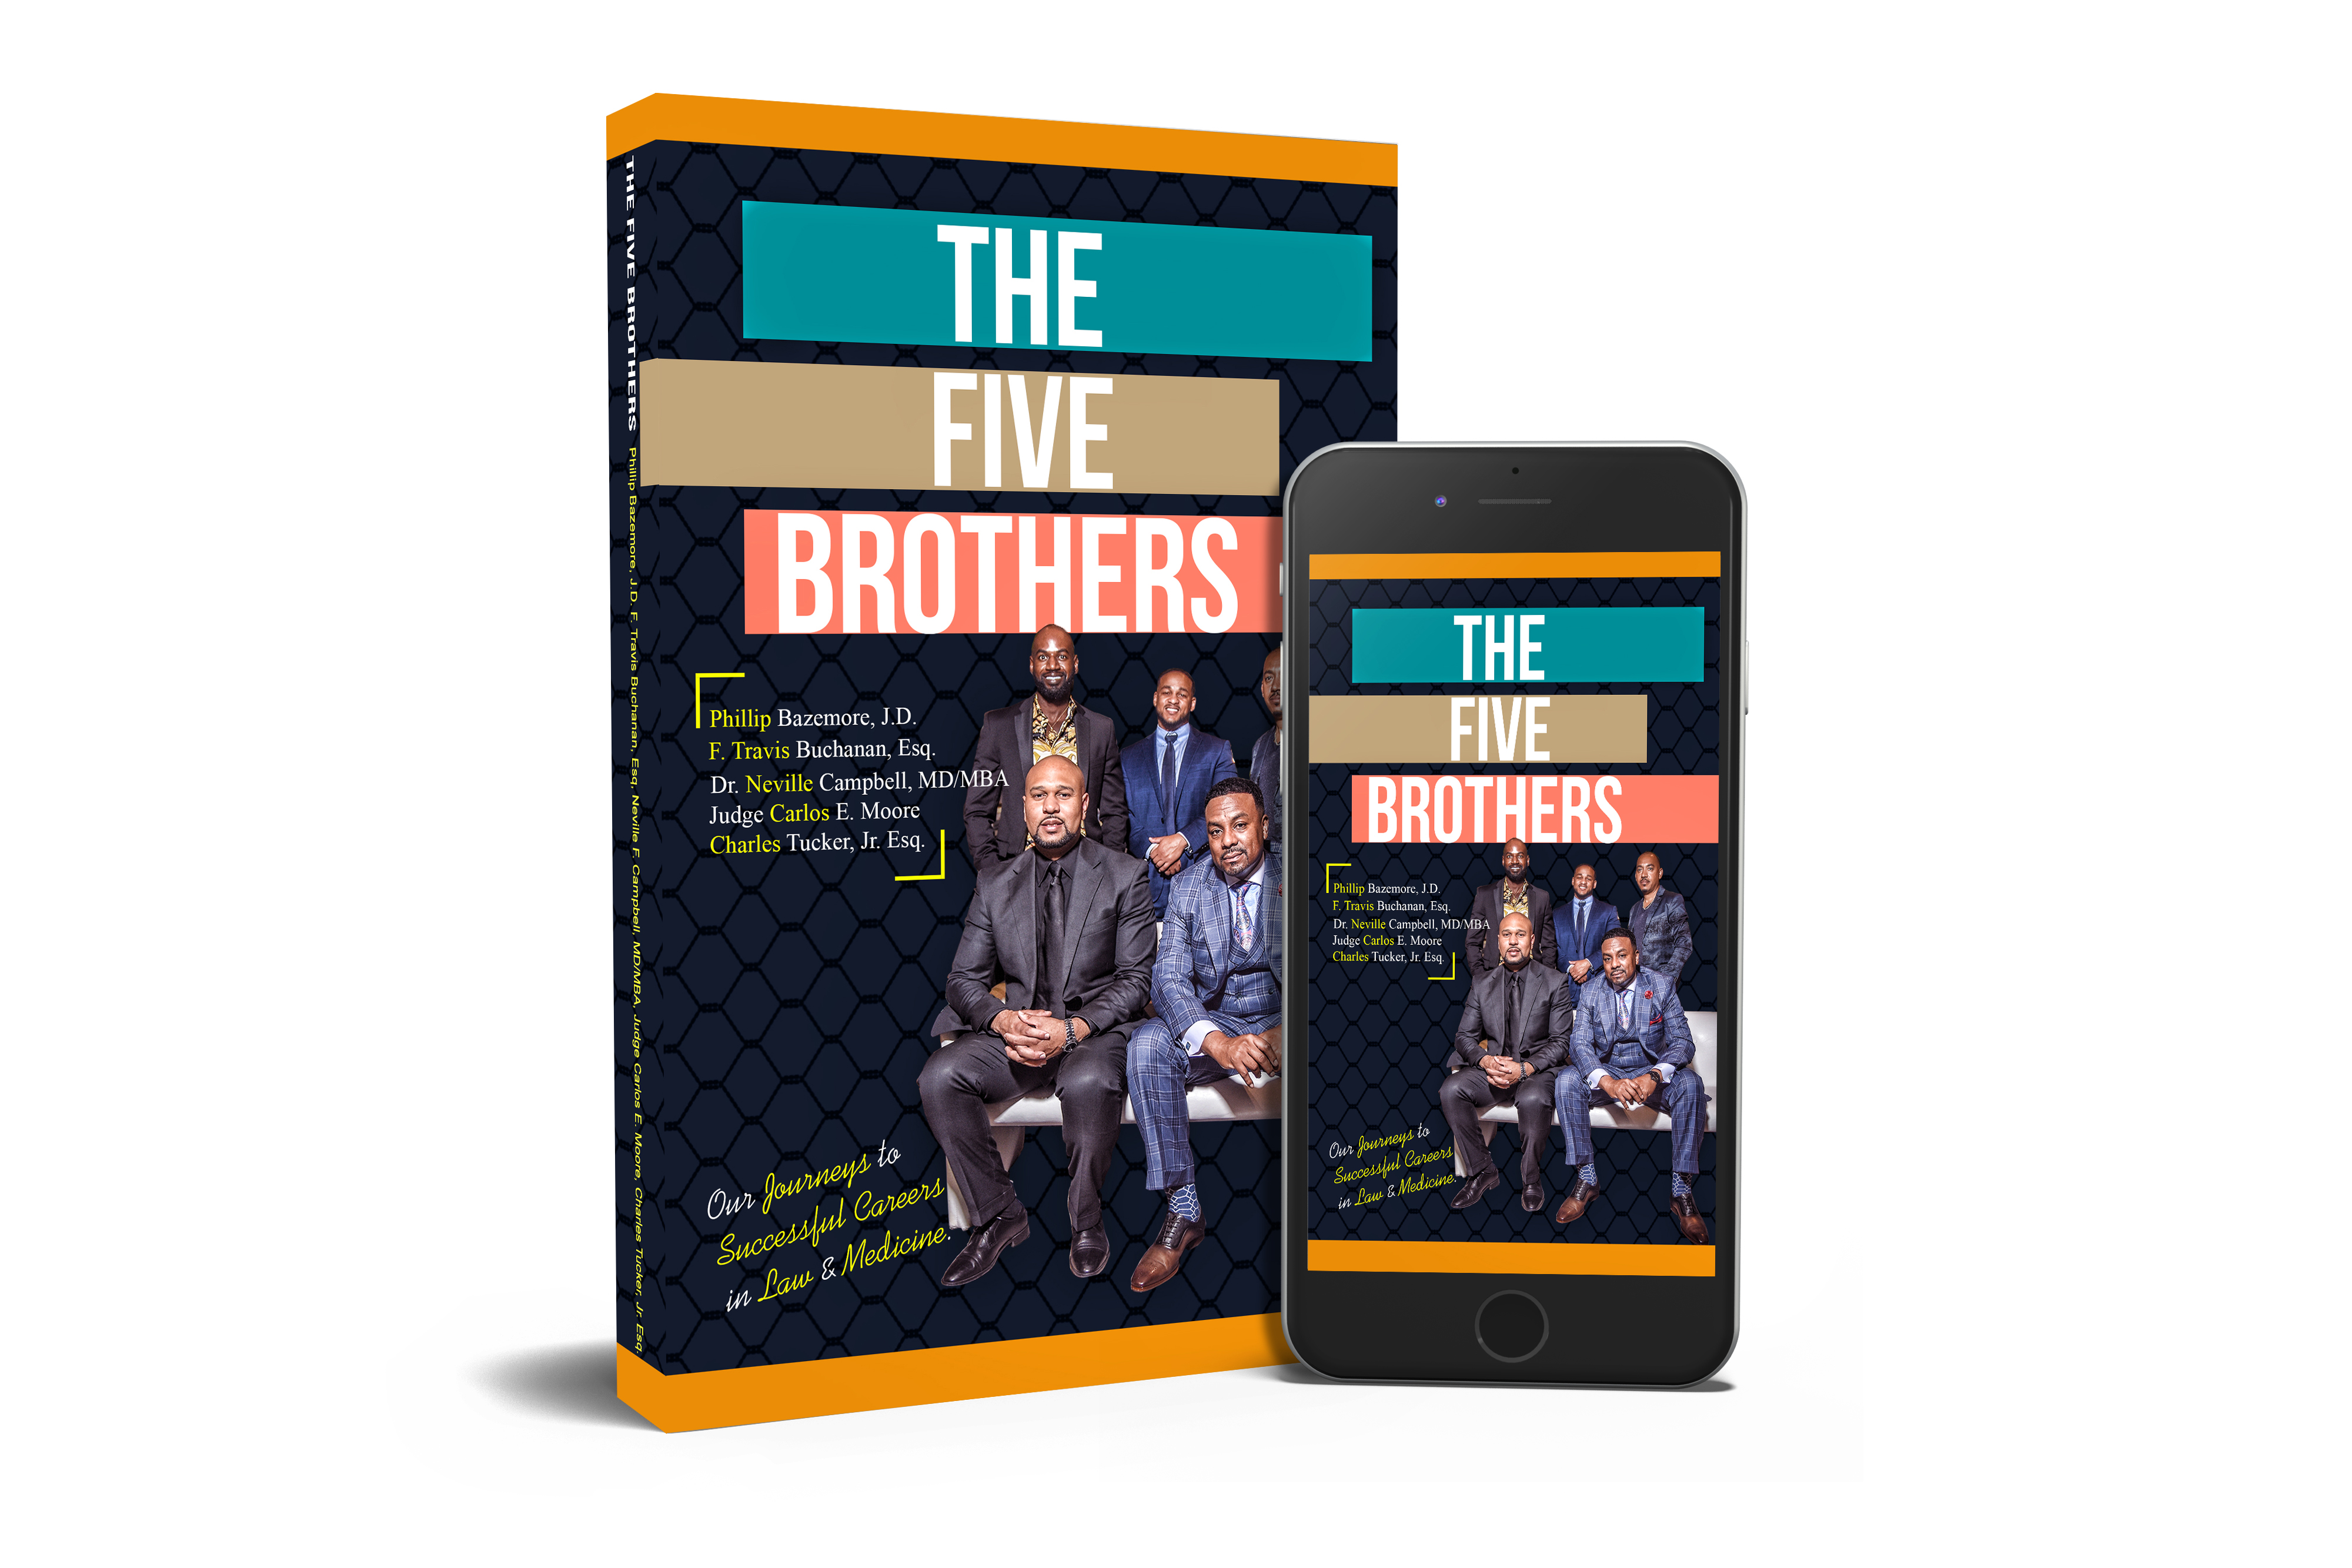 The Five Brothers Paperback and iPhone Book Cover Graphic